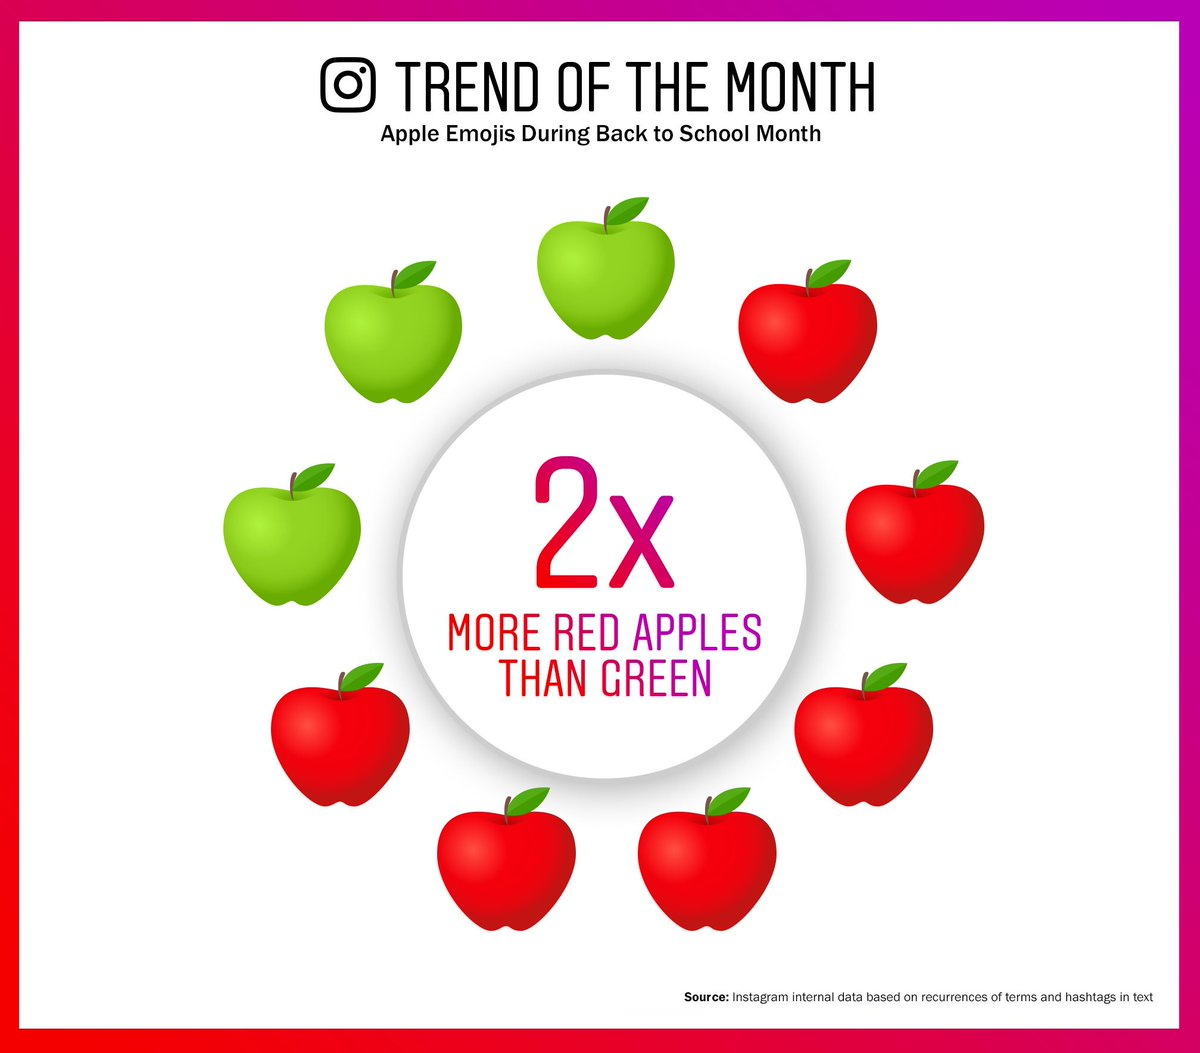 Trend alert! #BackToSchool is upon us, which means 🍎🍎🍎🍎🍎🍎🍏🍏🍏.